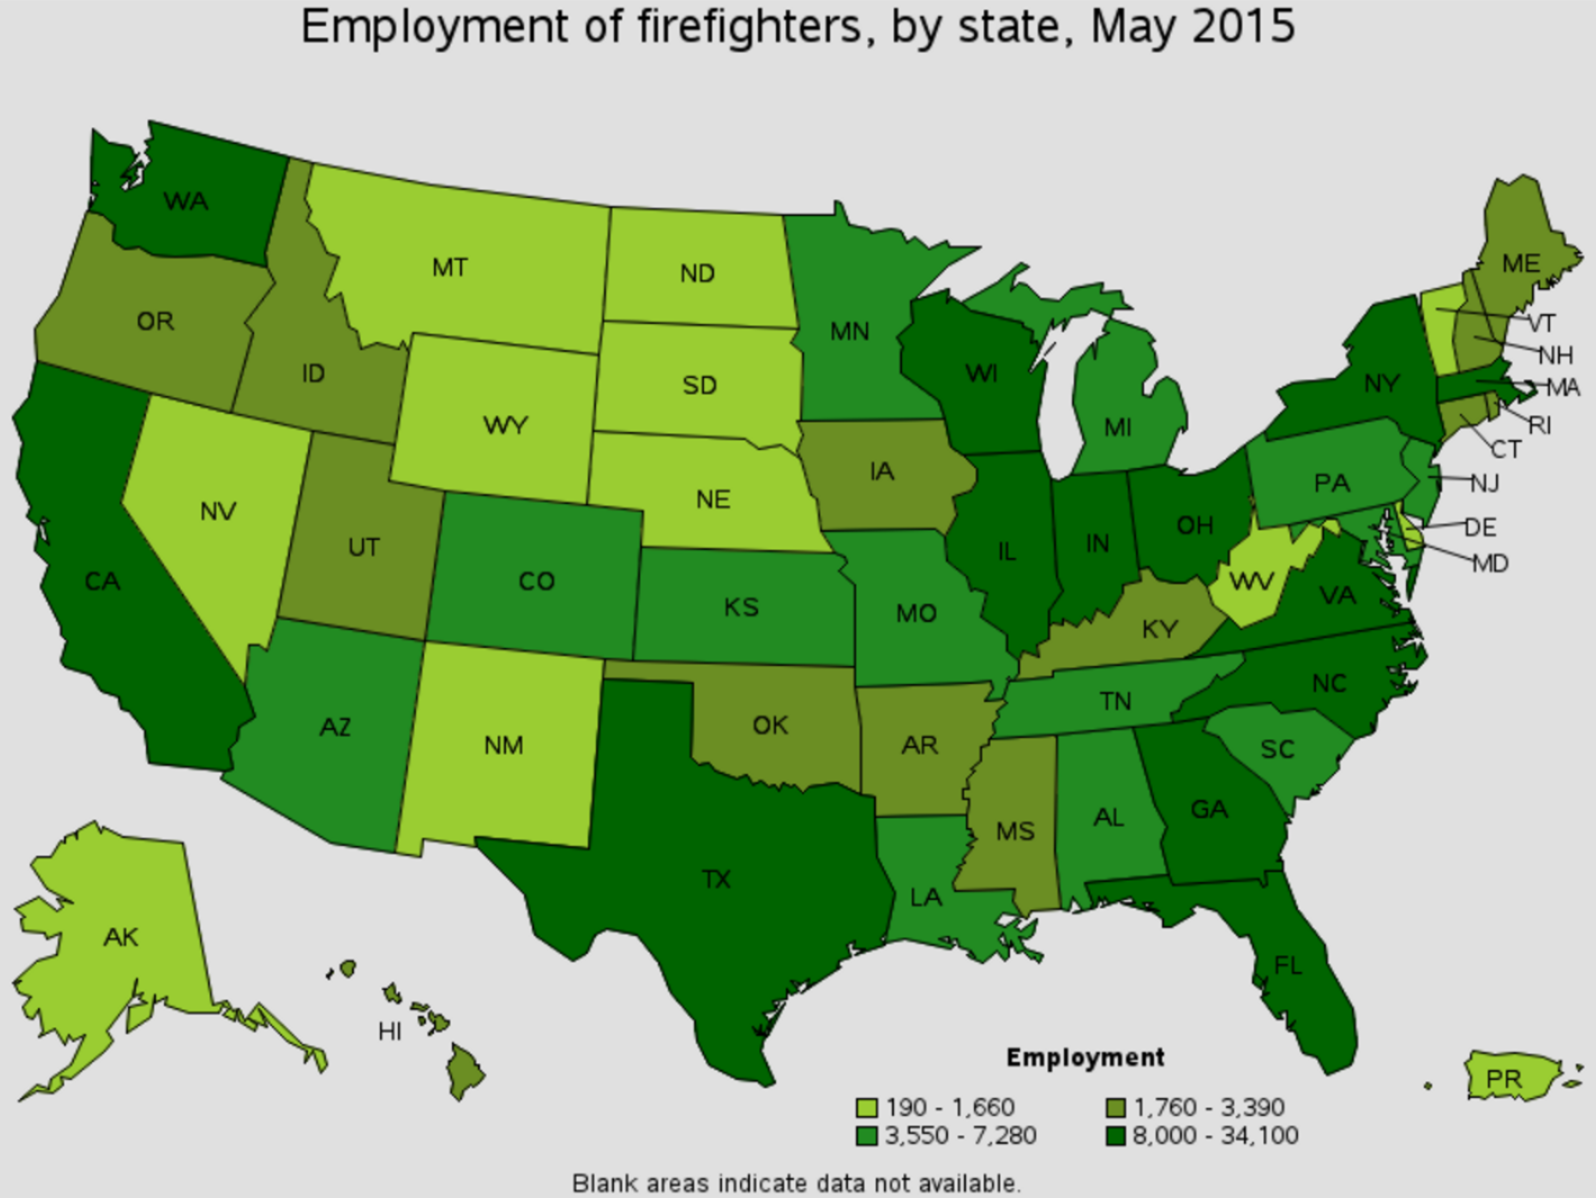 firefighter job outlook by state Wilmington Ohio